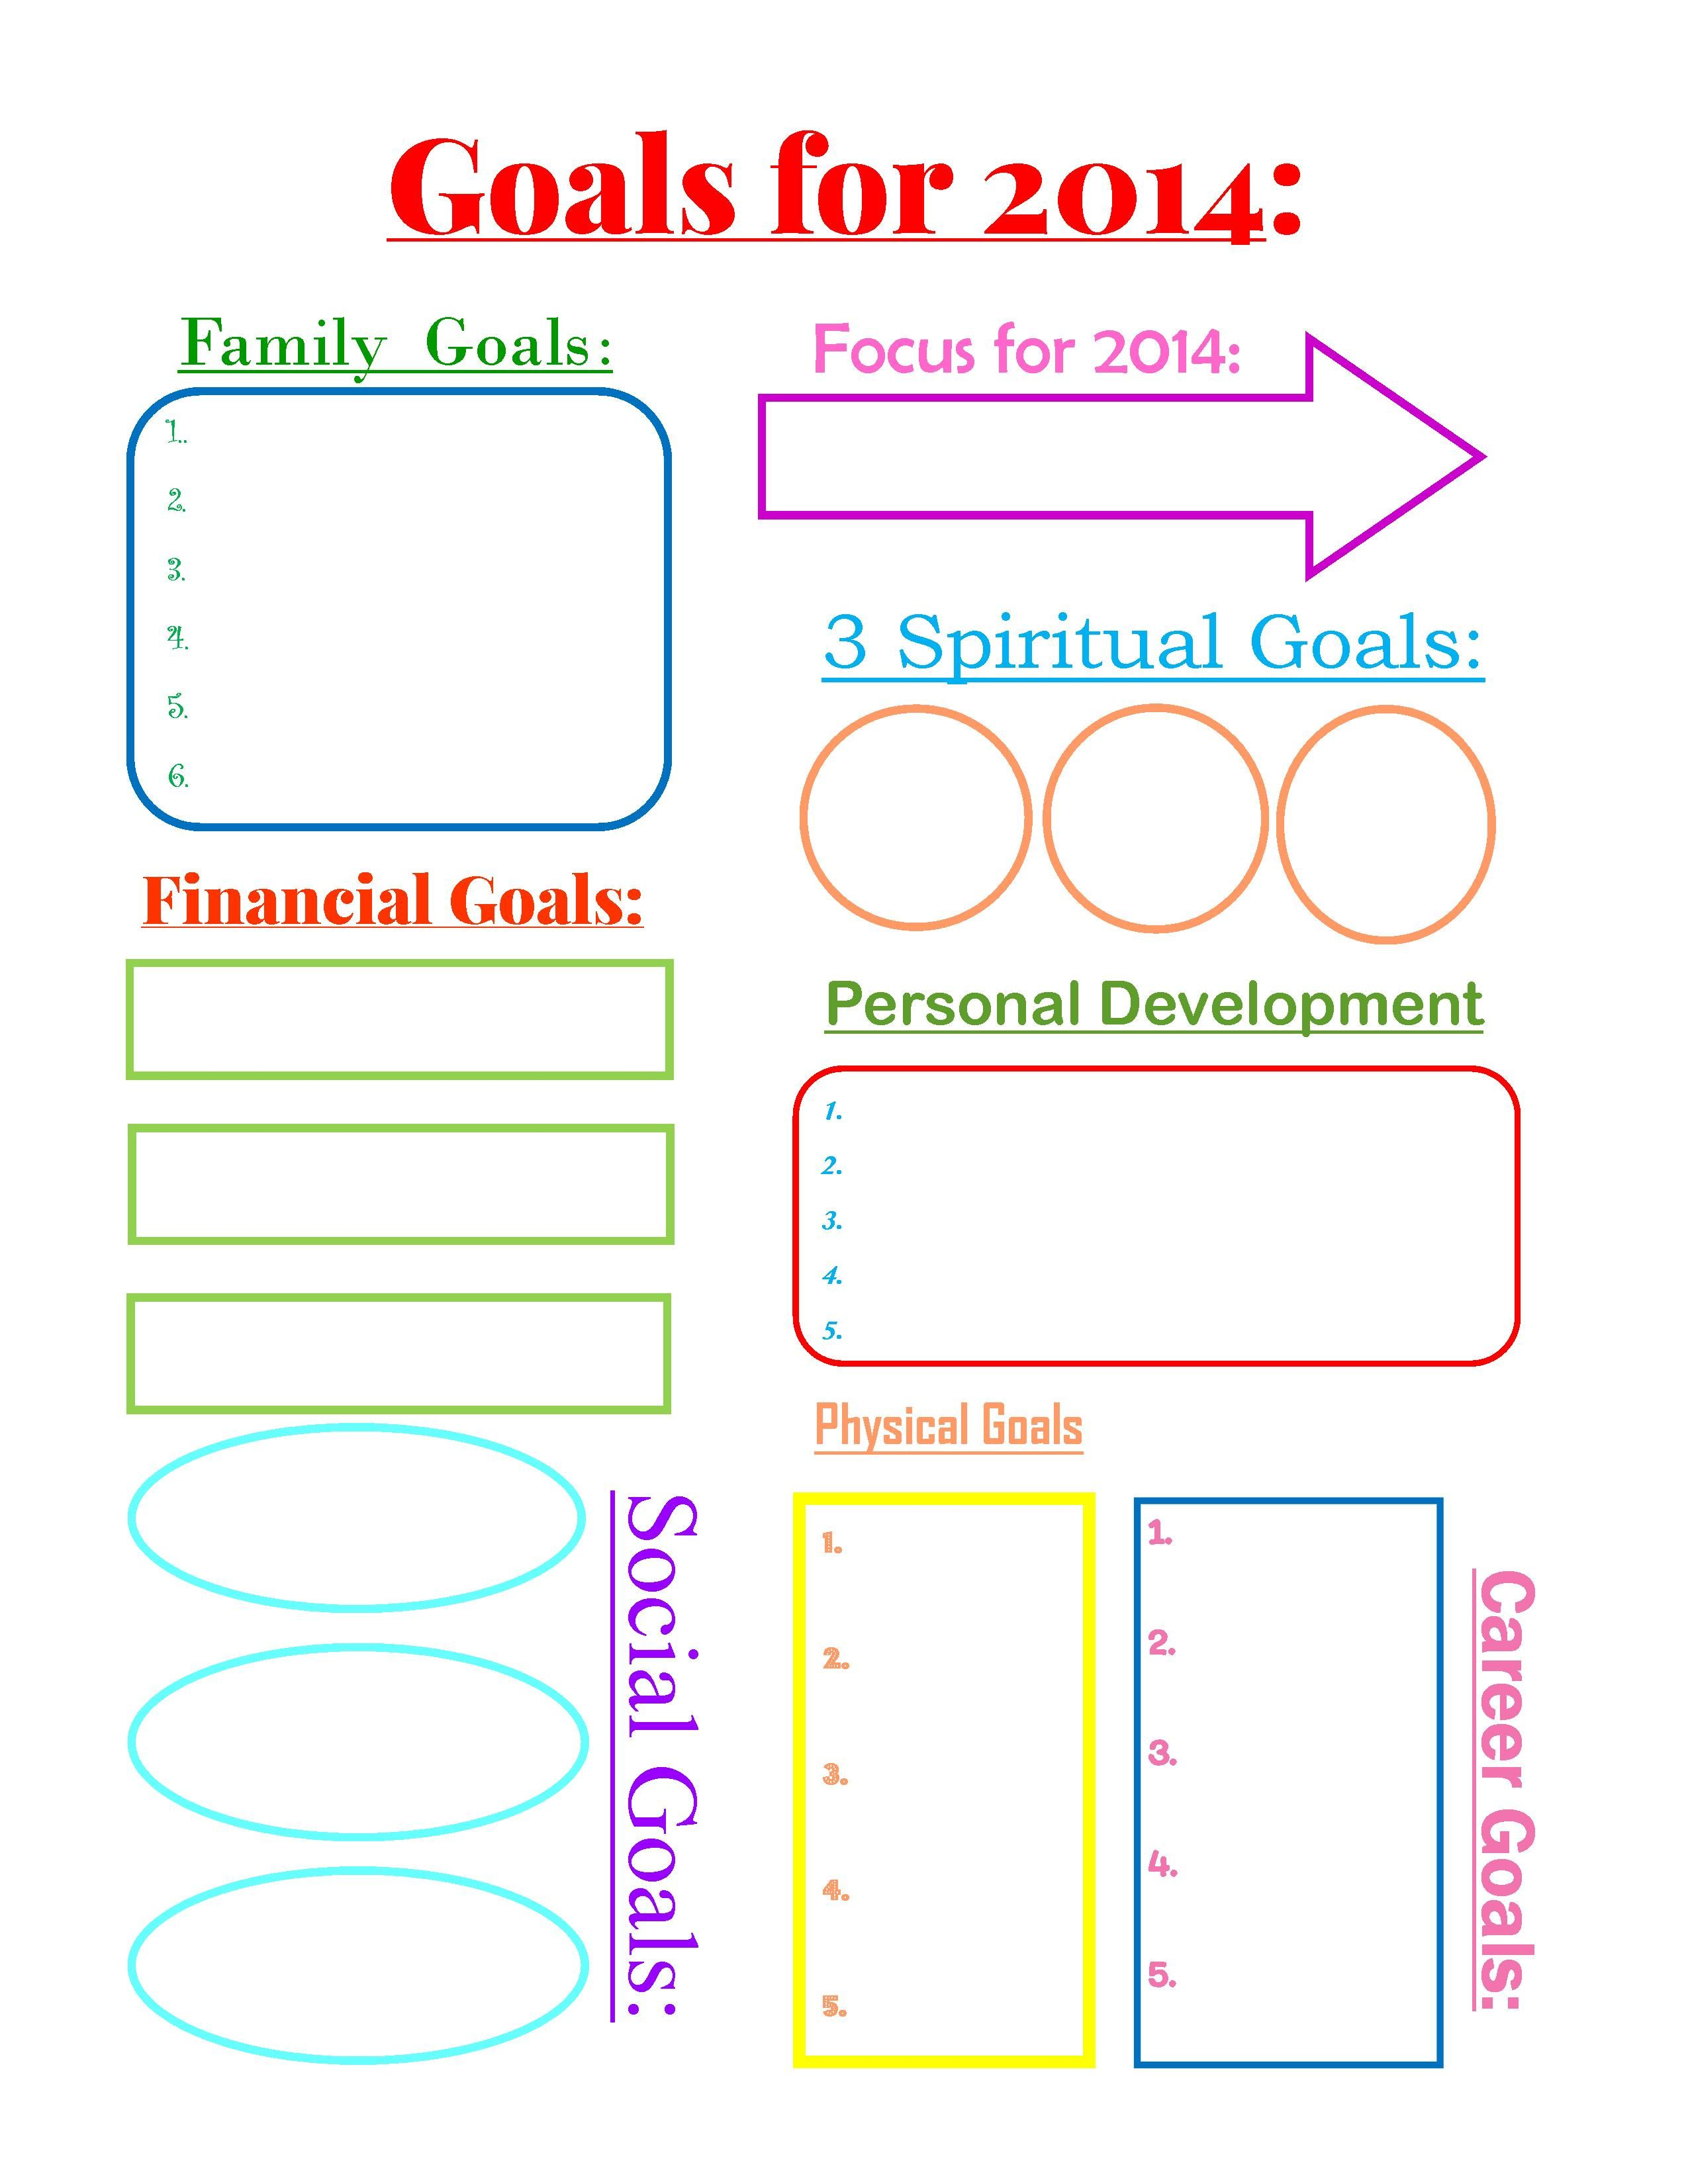 Half Way Over How Are Your Goals Coming